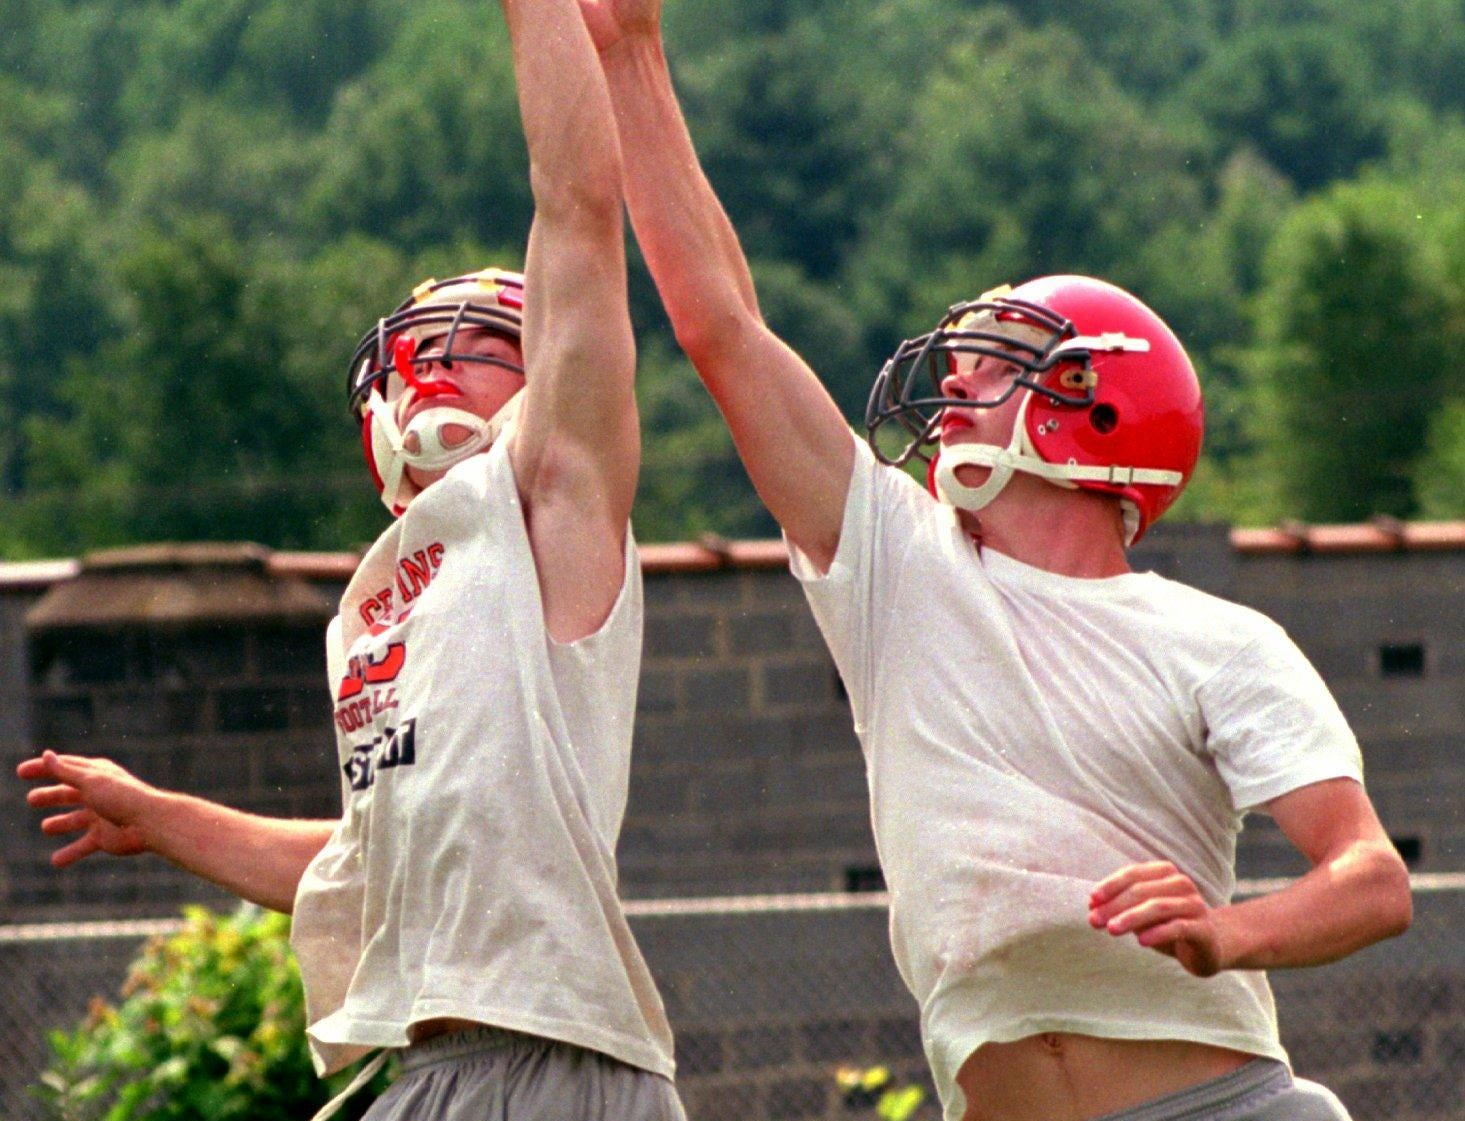 From 1996: Chenango Valley Football players Lenny Gee, left, and Dan Clark, right, reach for the ball at a recent practice.